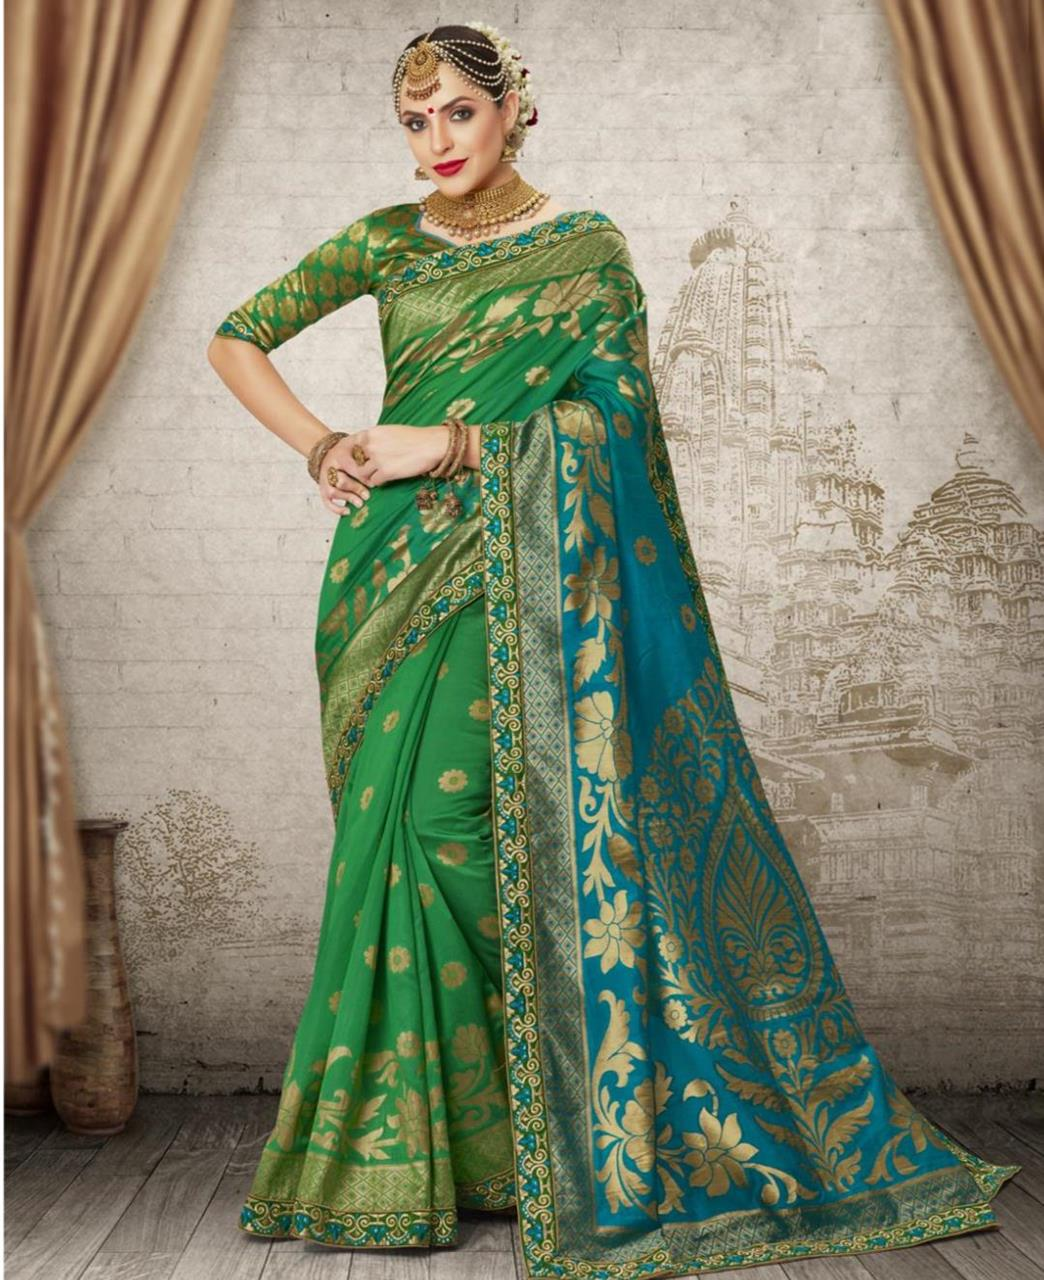 Jacquard Silk Saree (Sari) in Green